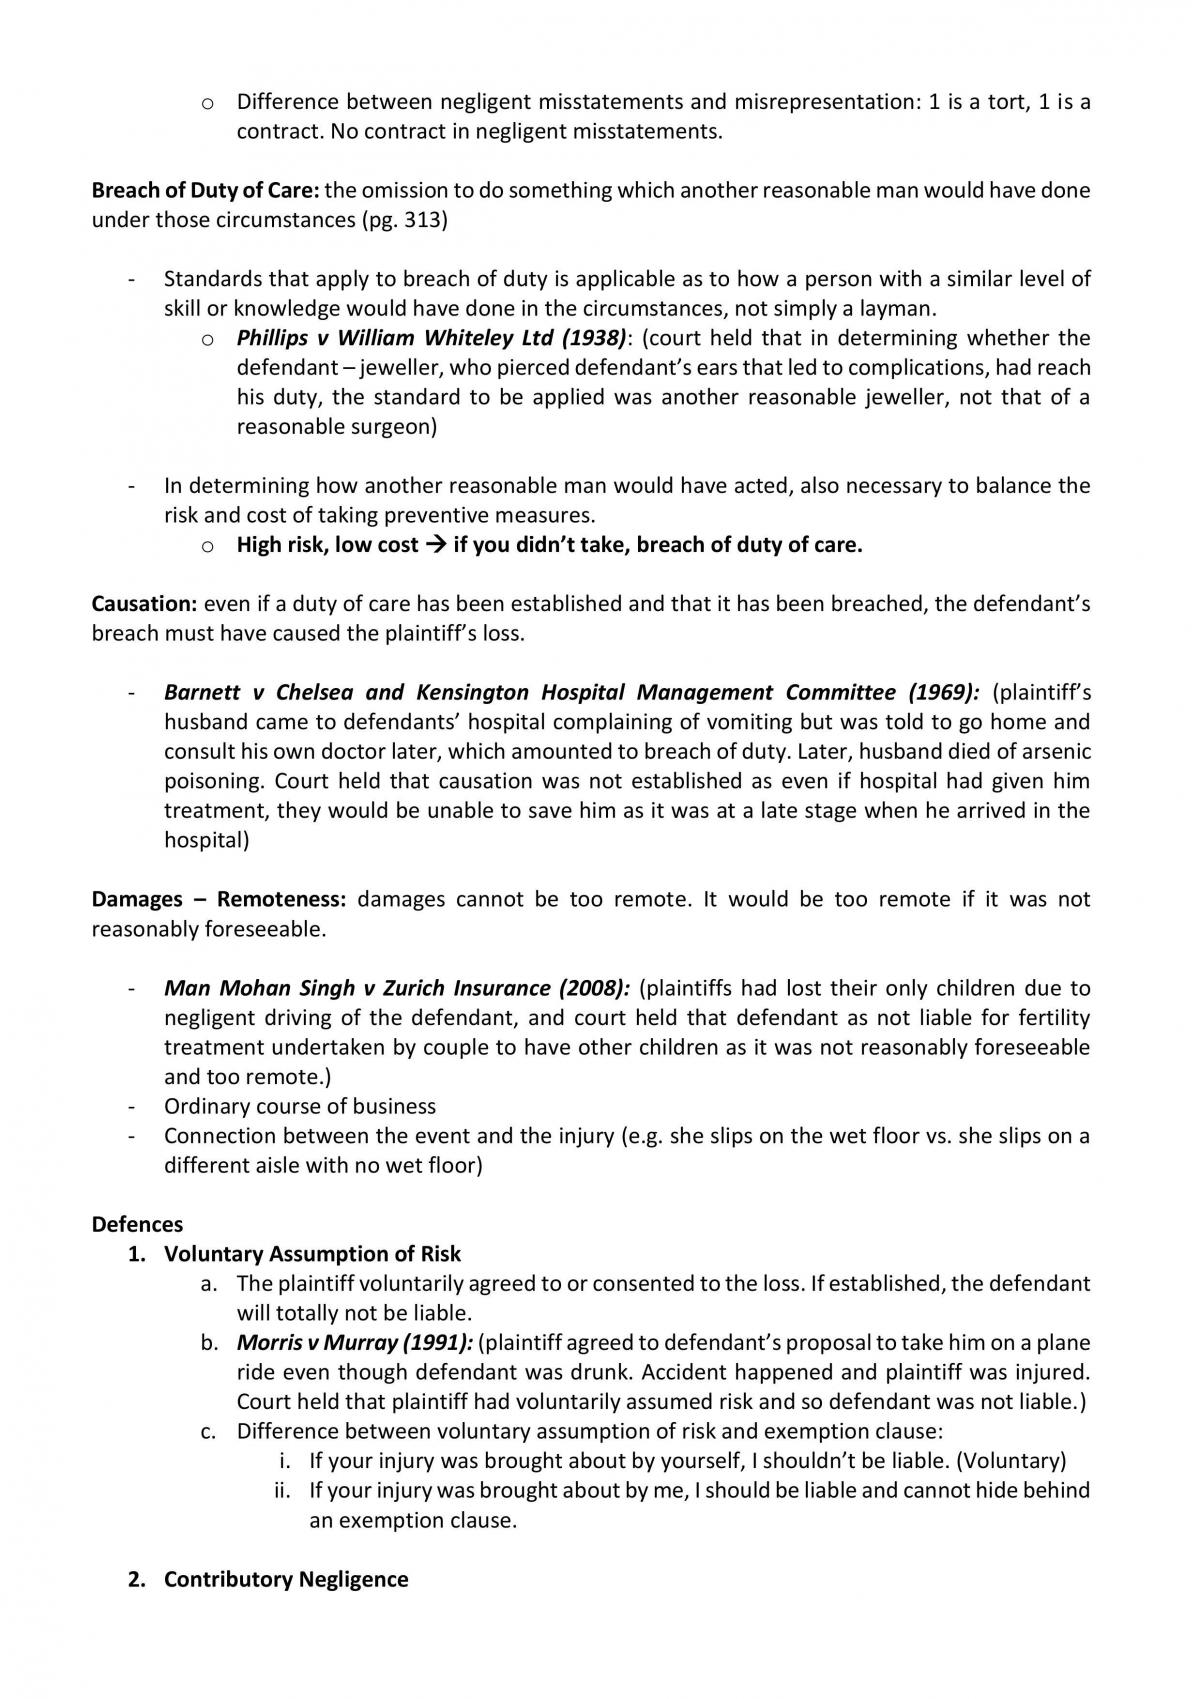 BSP1702 Complete Finals Notes - Page 16